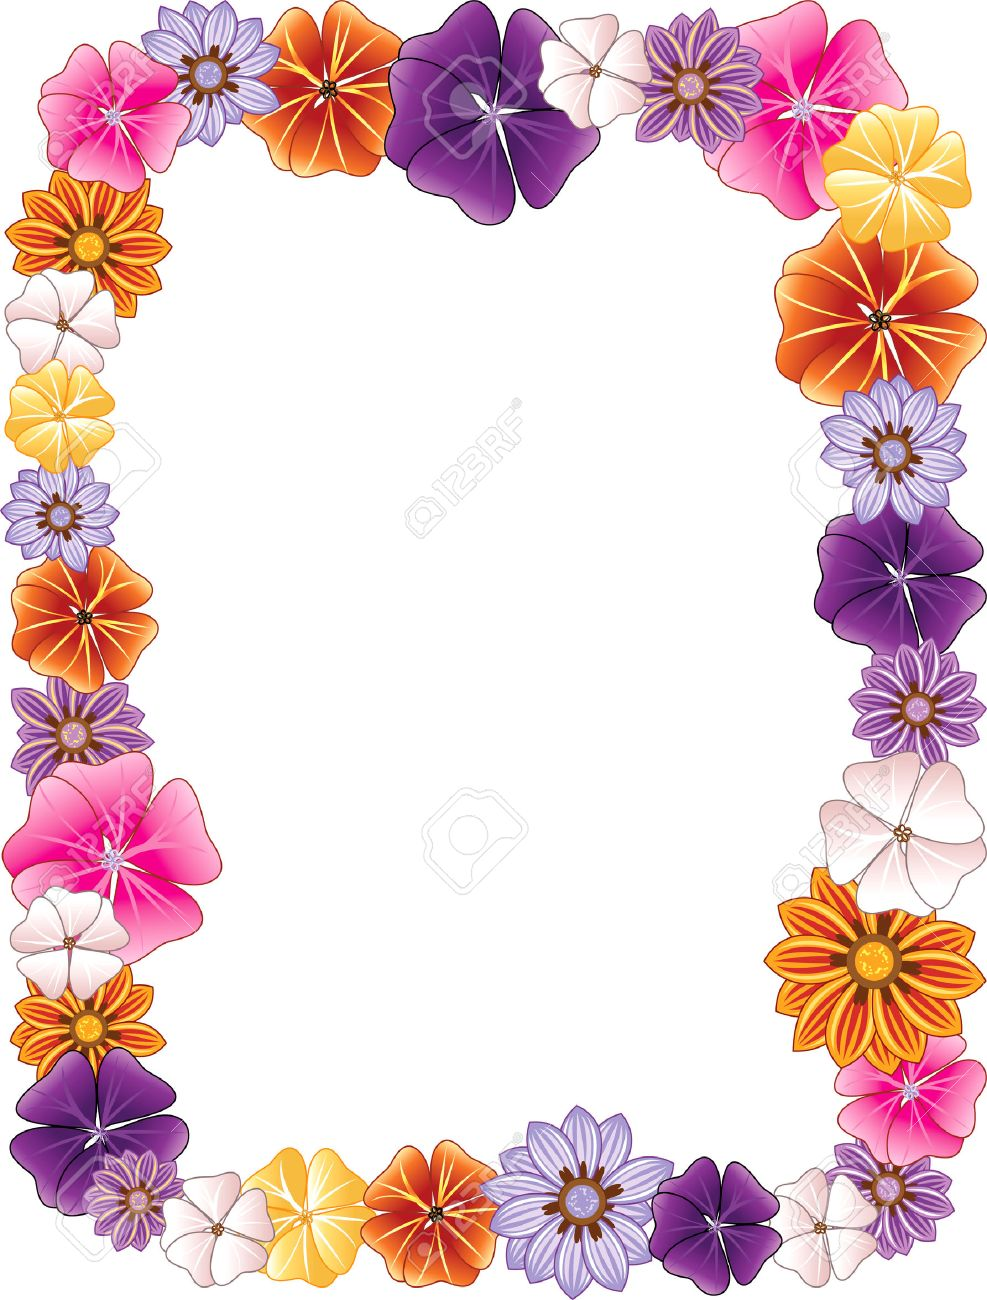 illustration of a Flower border. Stock Vector - 7091820